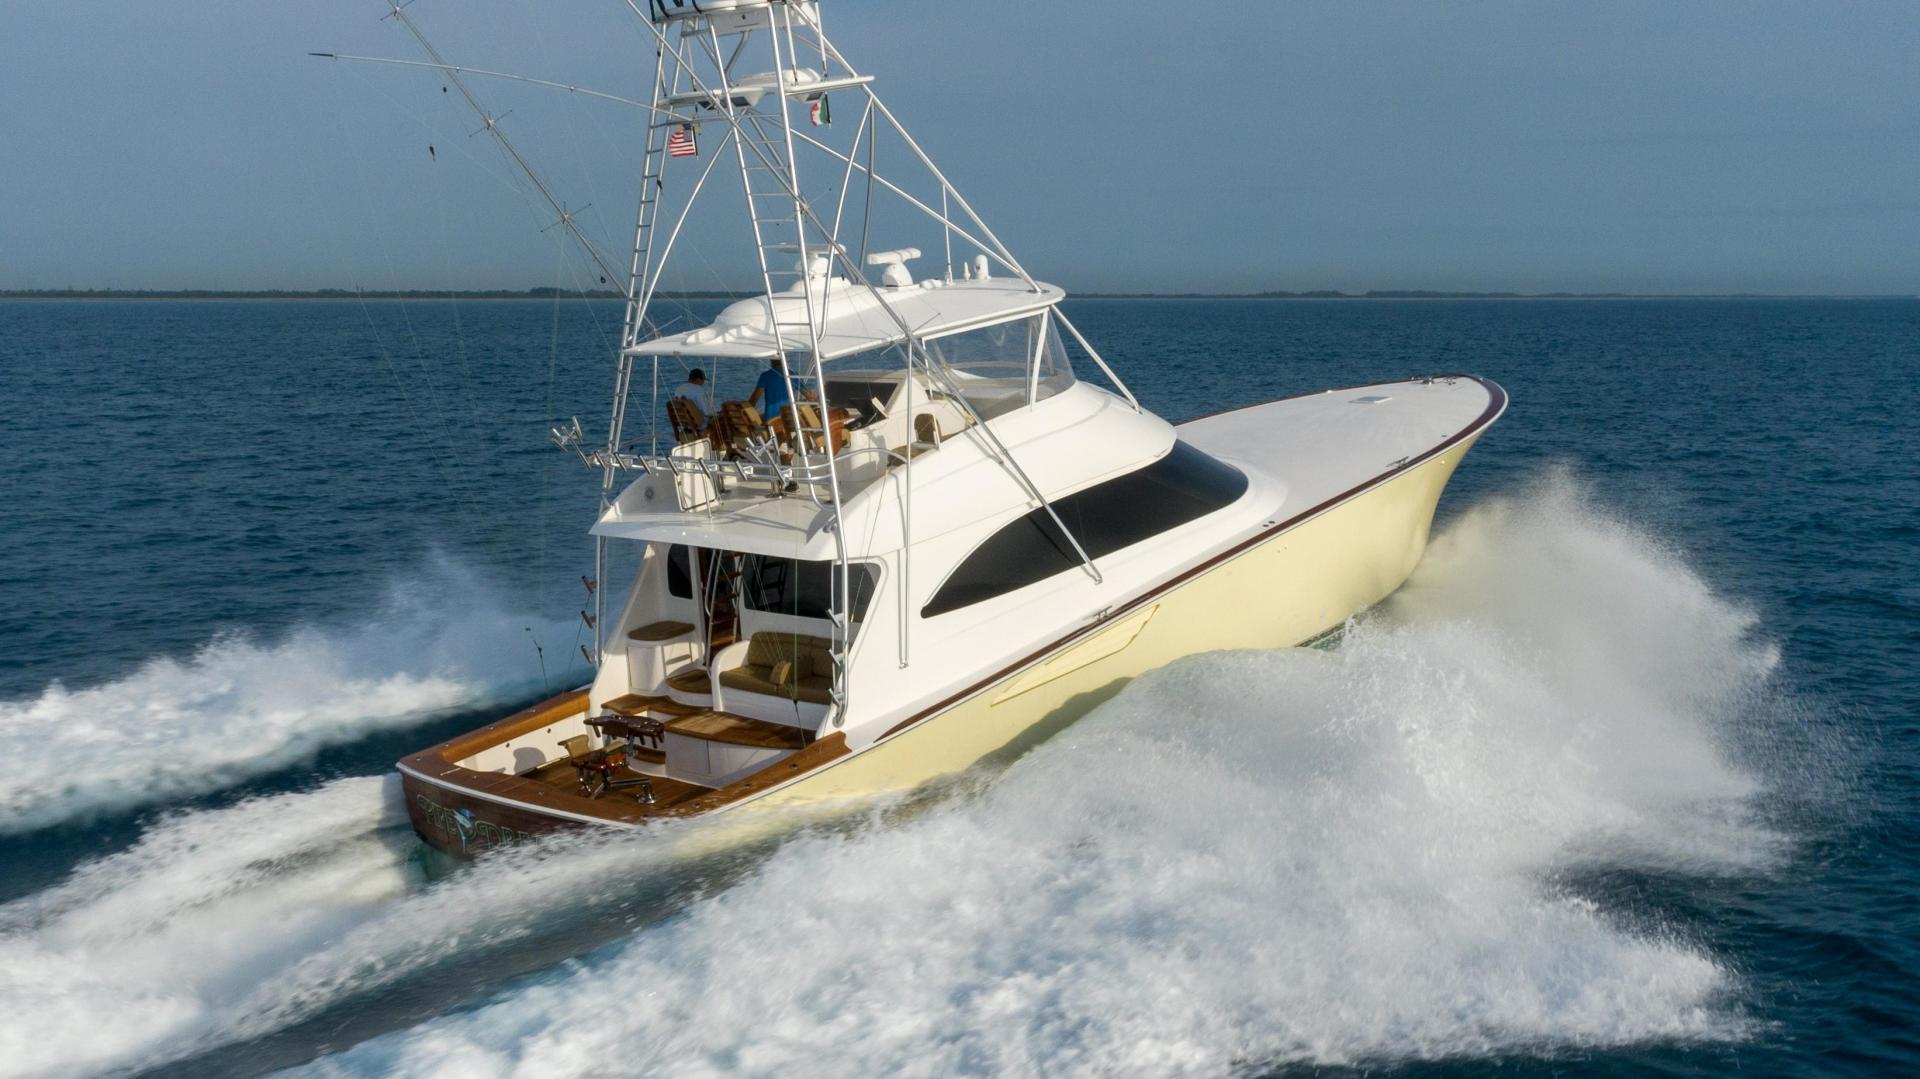 Viking-Sport Fish 2015-PIPE DREAMER Brielle-New Jersey-United States-1473172 | Thumbnail